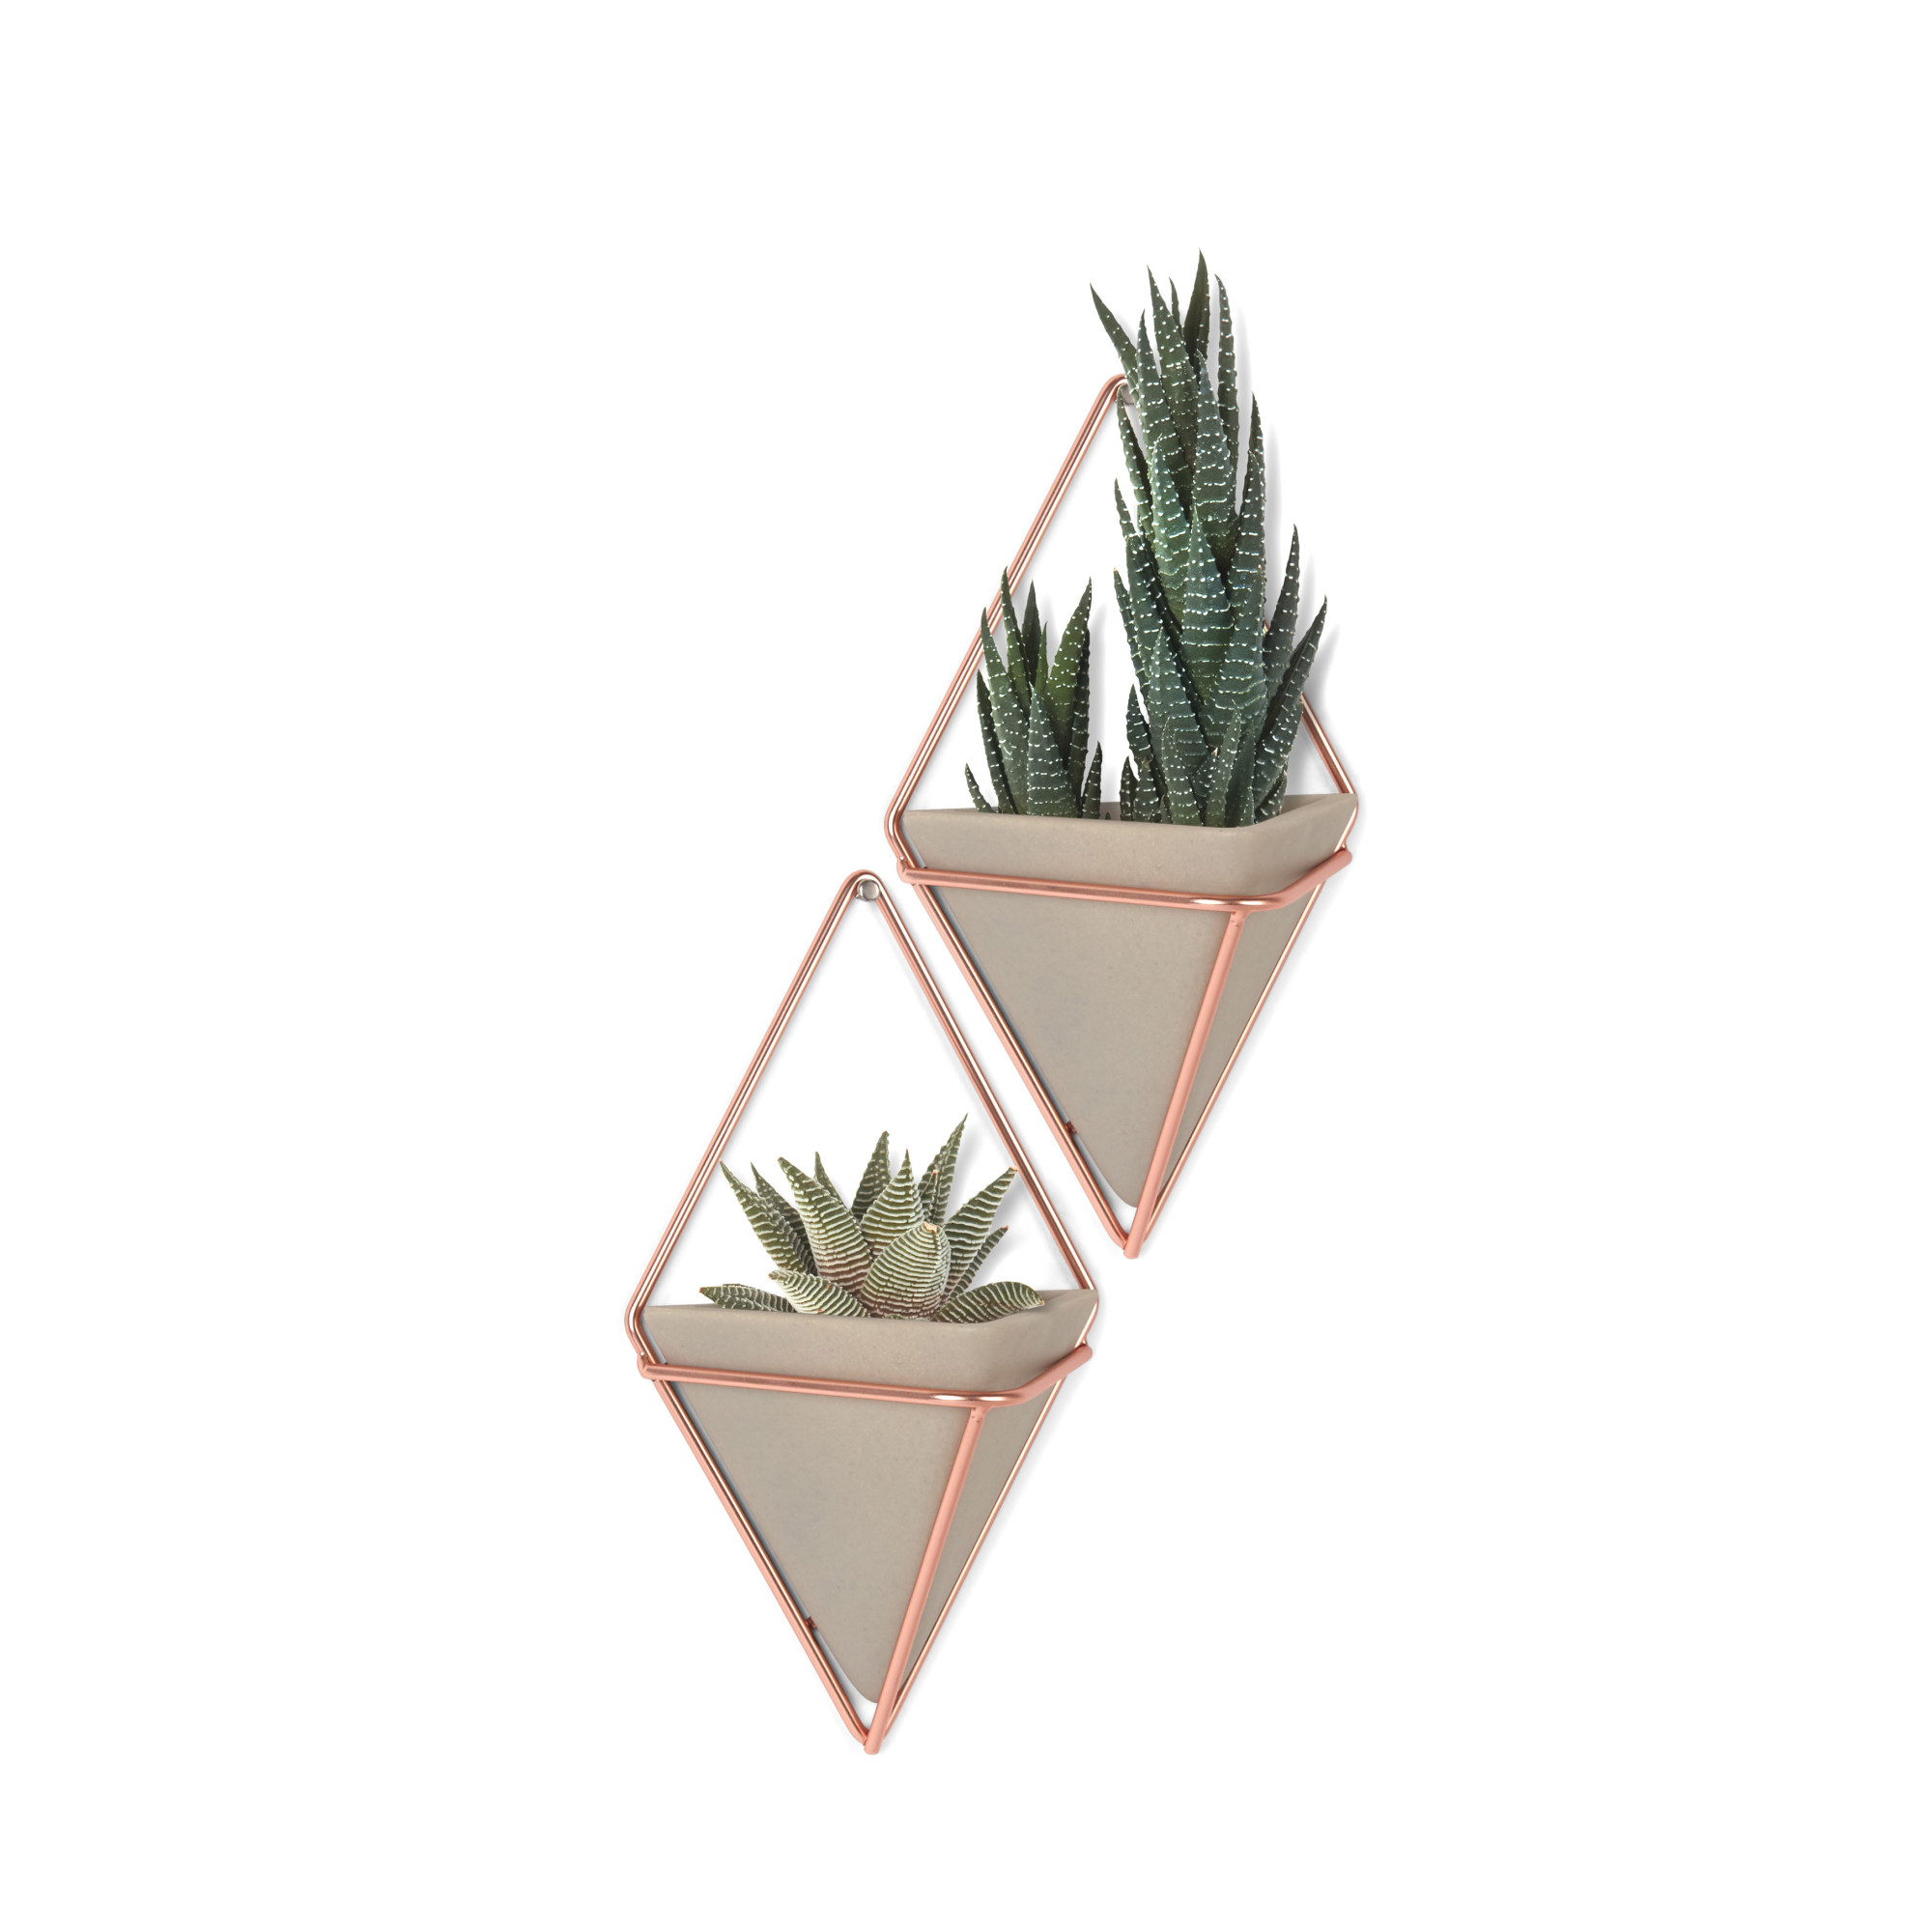 Details About Umbra 470753 Trigg Two Piece Concrete Wall Mounted Planter  Set With Metal Frame With Regard To 2 Piece Trigg Wall Decor Sets (Set Of 2) (Photo 5 of 30)